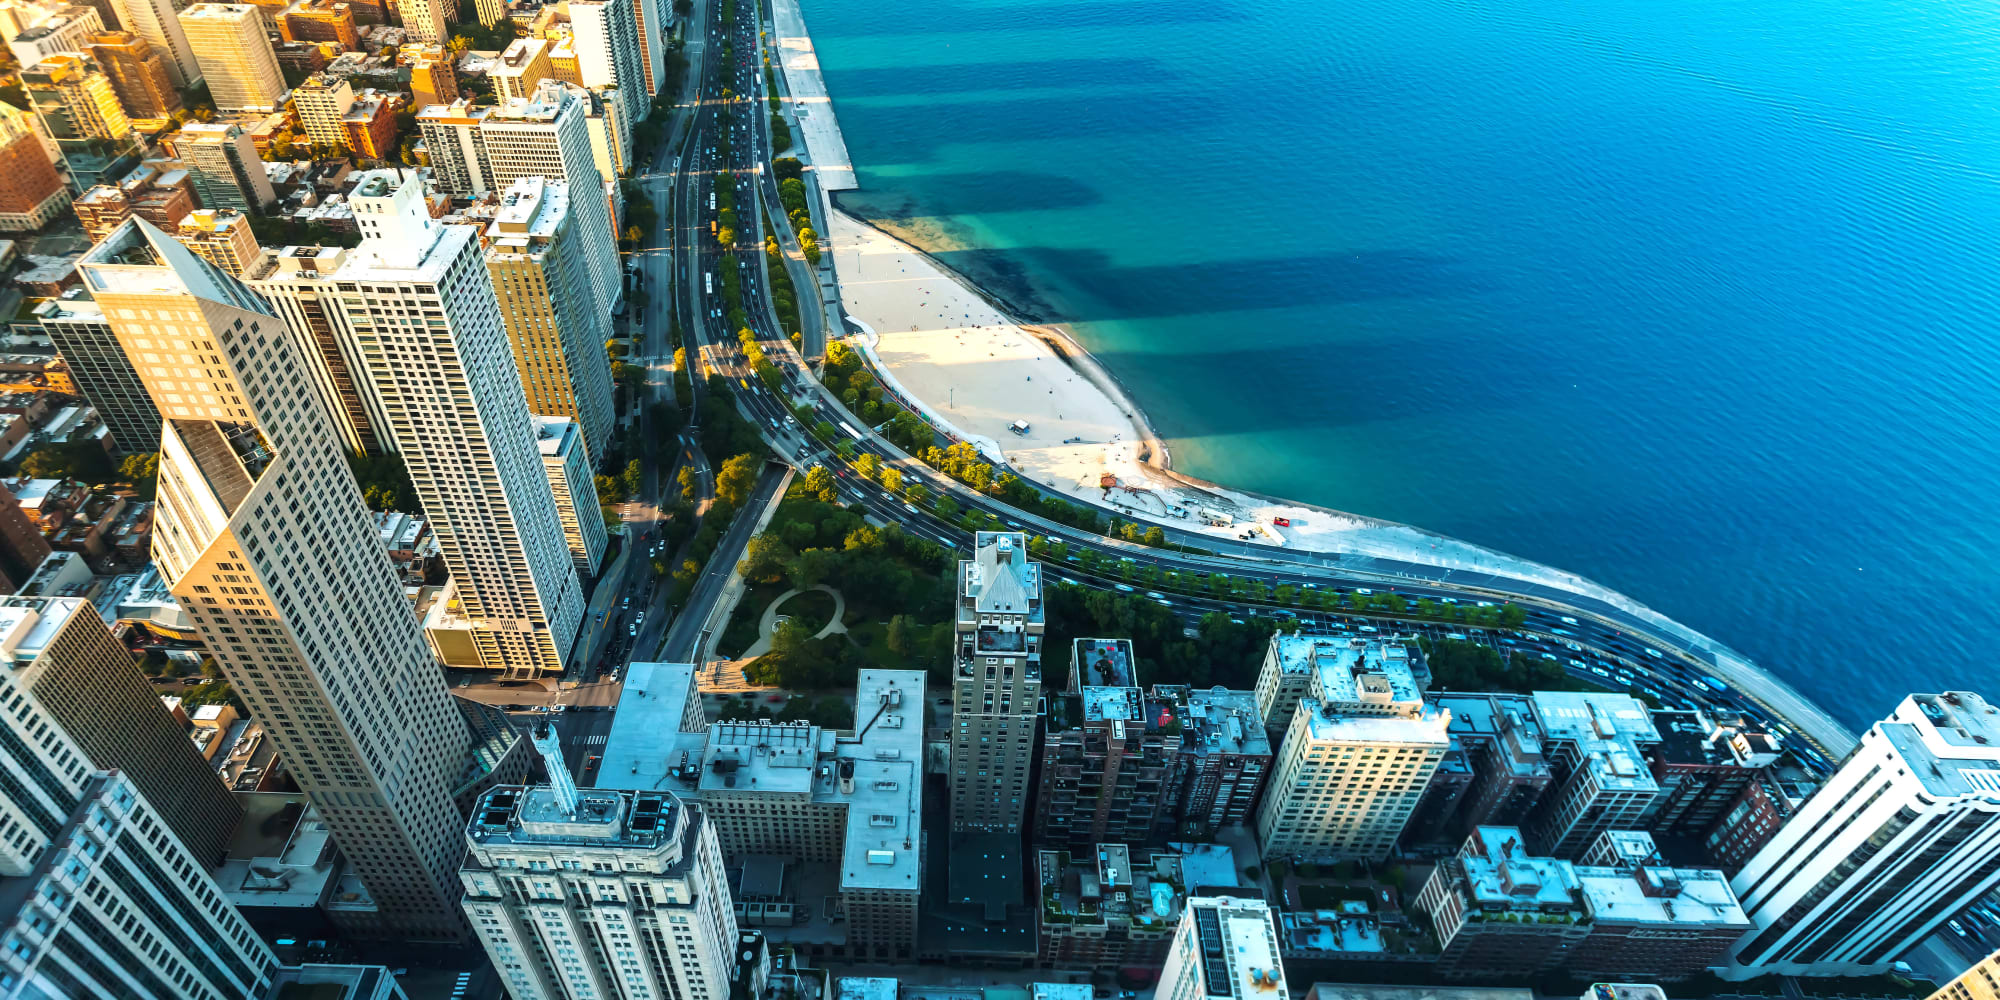 Aerial view of the city neighborhood near The Residences at NEWCITY in Chicago, Illinois